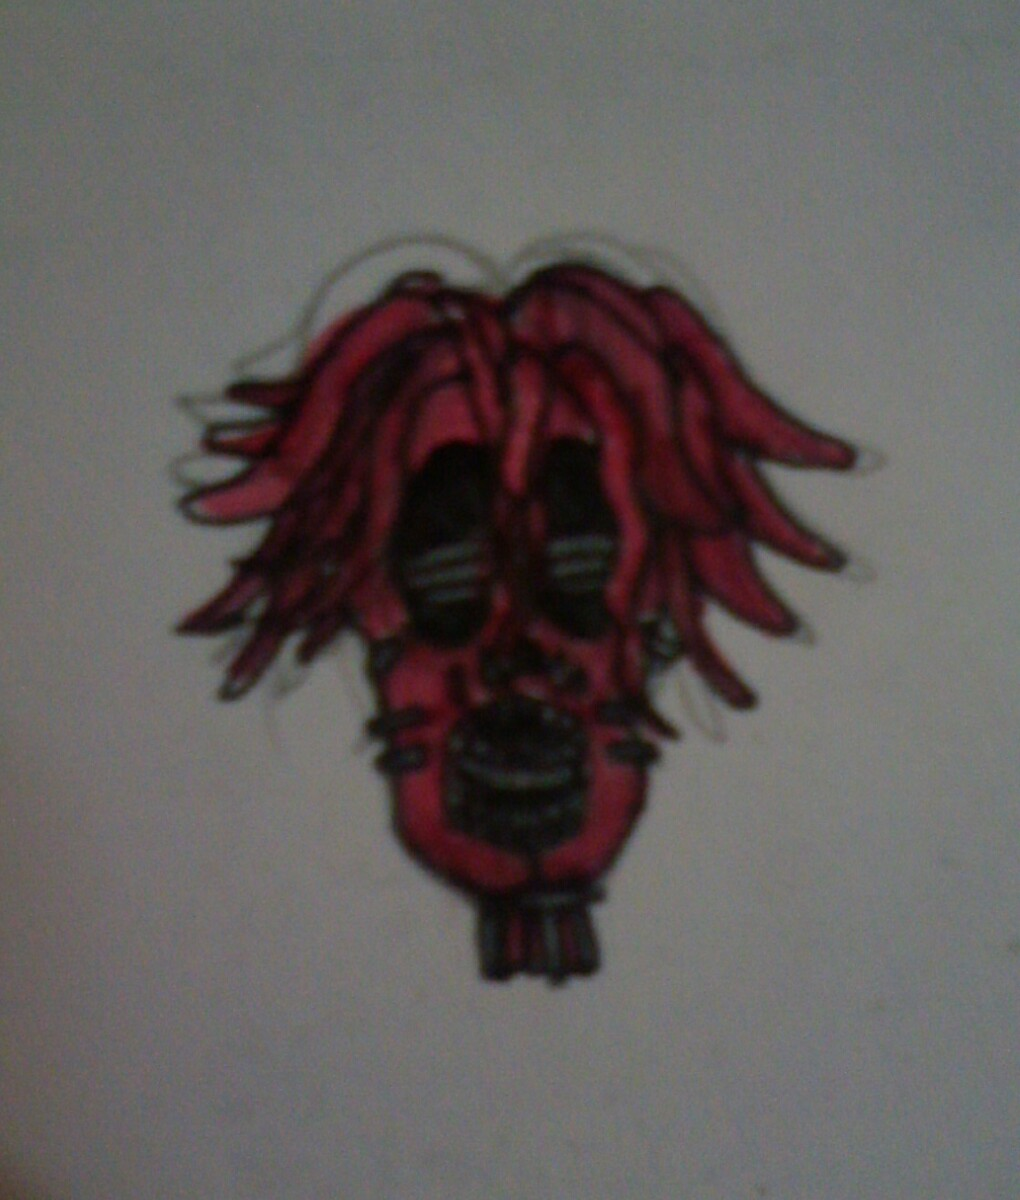 Mr Afton Baby S Nightmare Circus Head By Freddlefrooby On Deviantart Similar with circus banner png. mr afton baby s nightmare circus